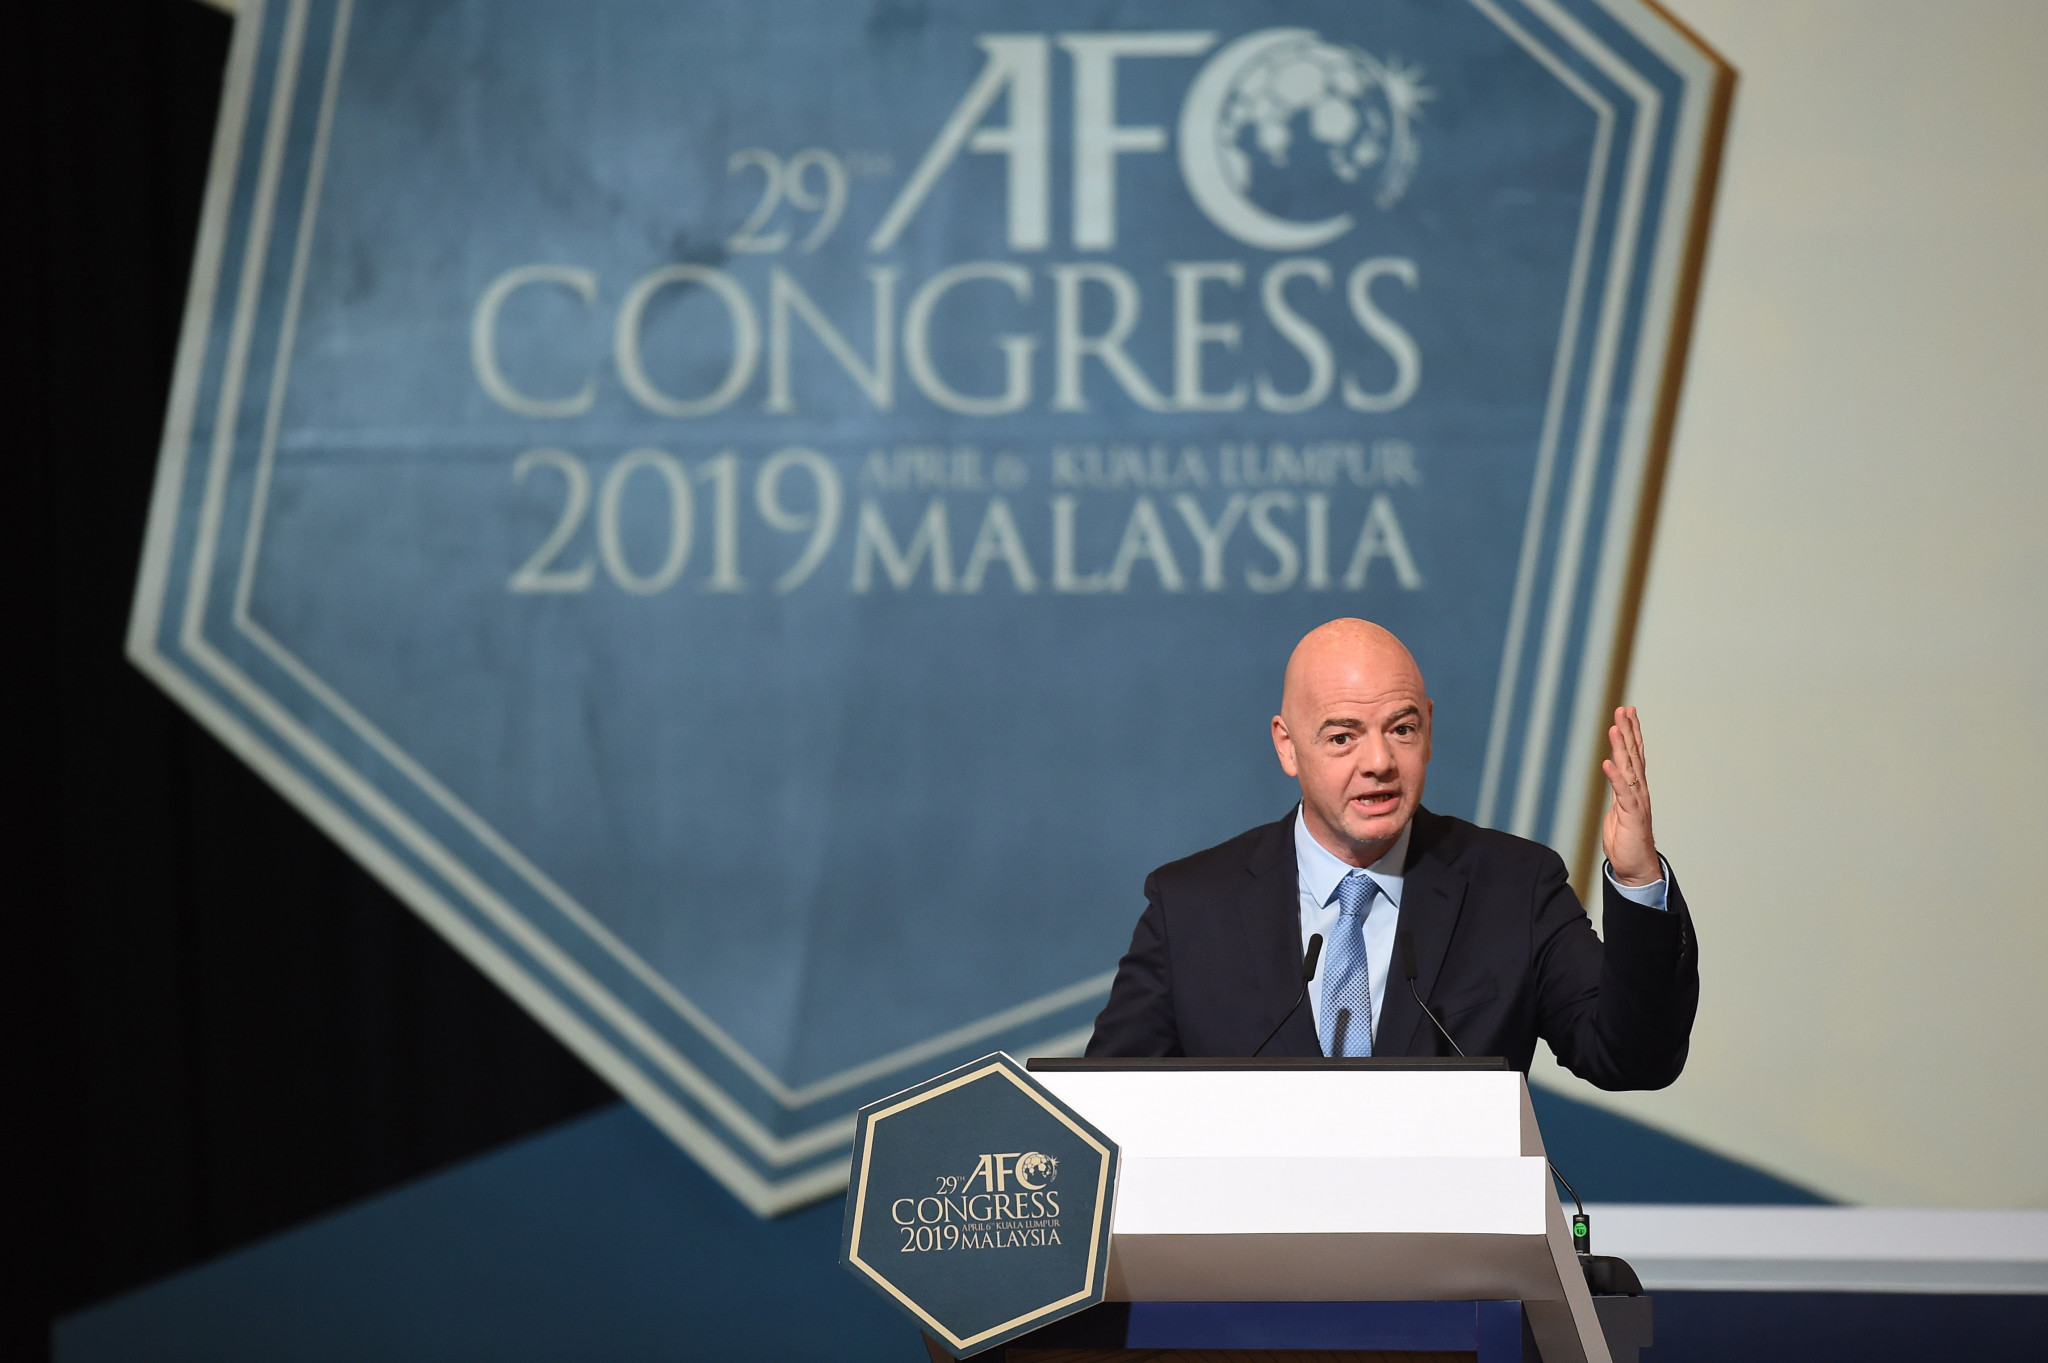 Infantino hails Shaikh Salman's re-election as Asian Football Confederation President